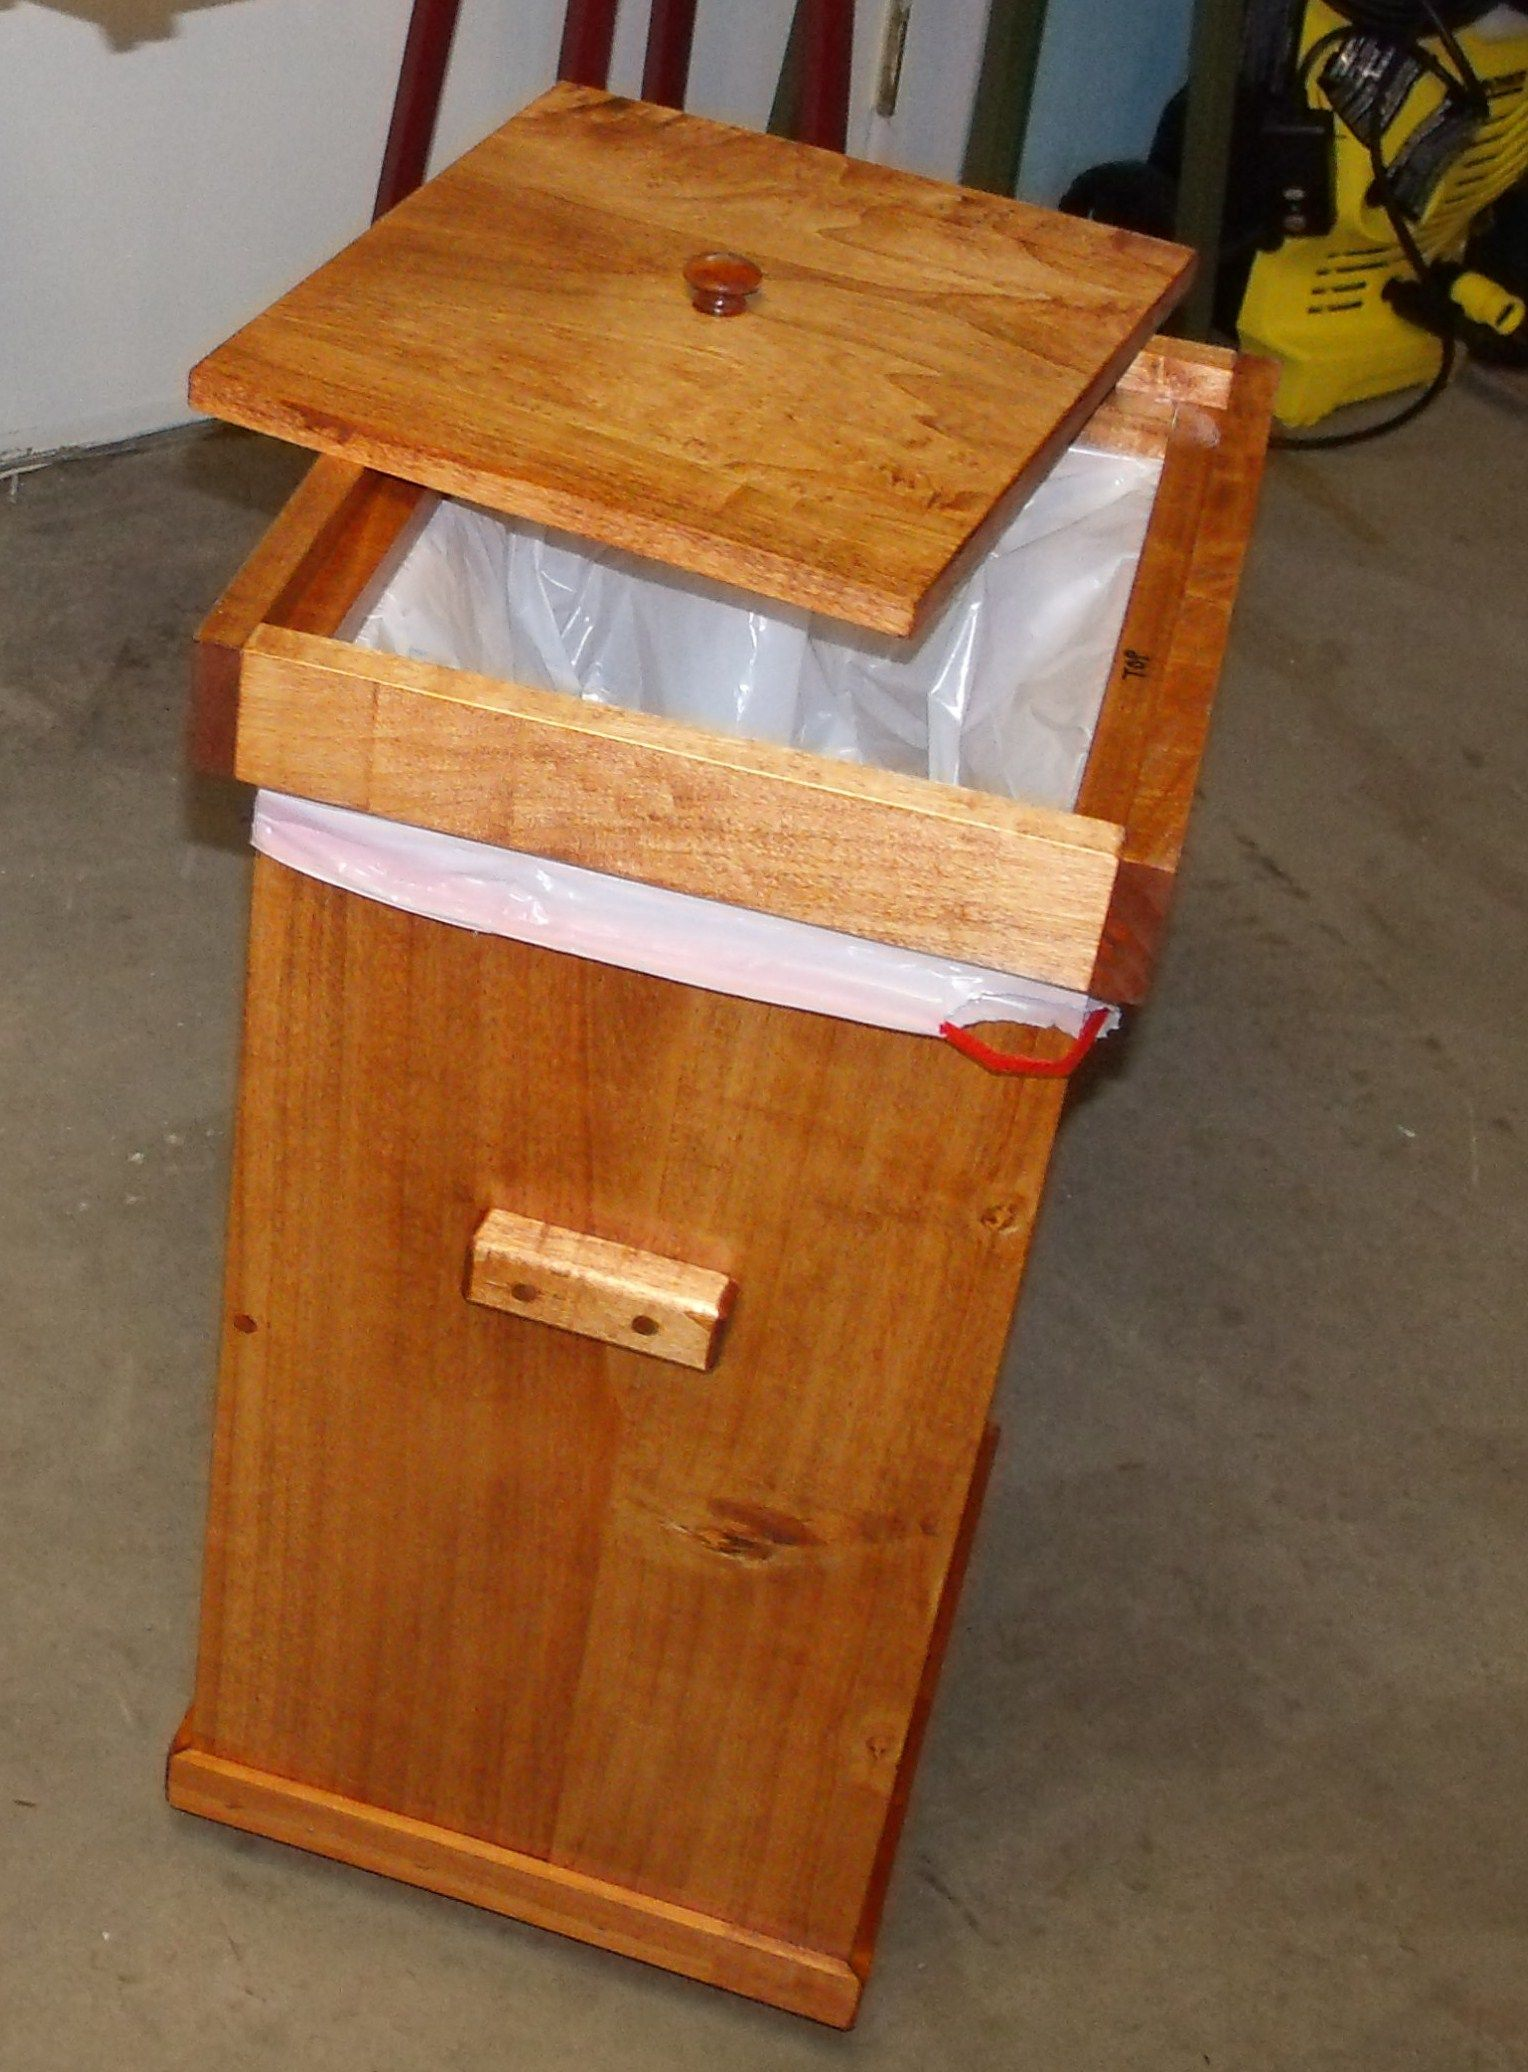 Kitchen Garbage Can With Lid Kitchen Garbage Can With Lid Organizing Pinterest